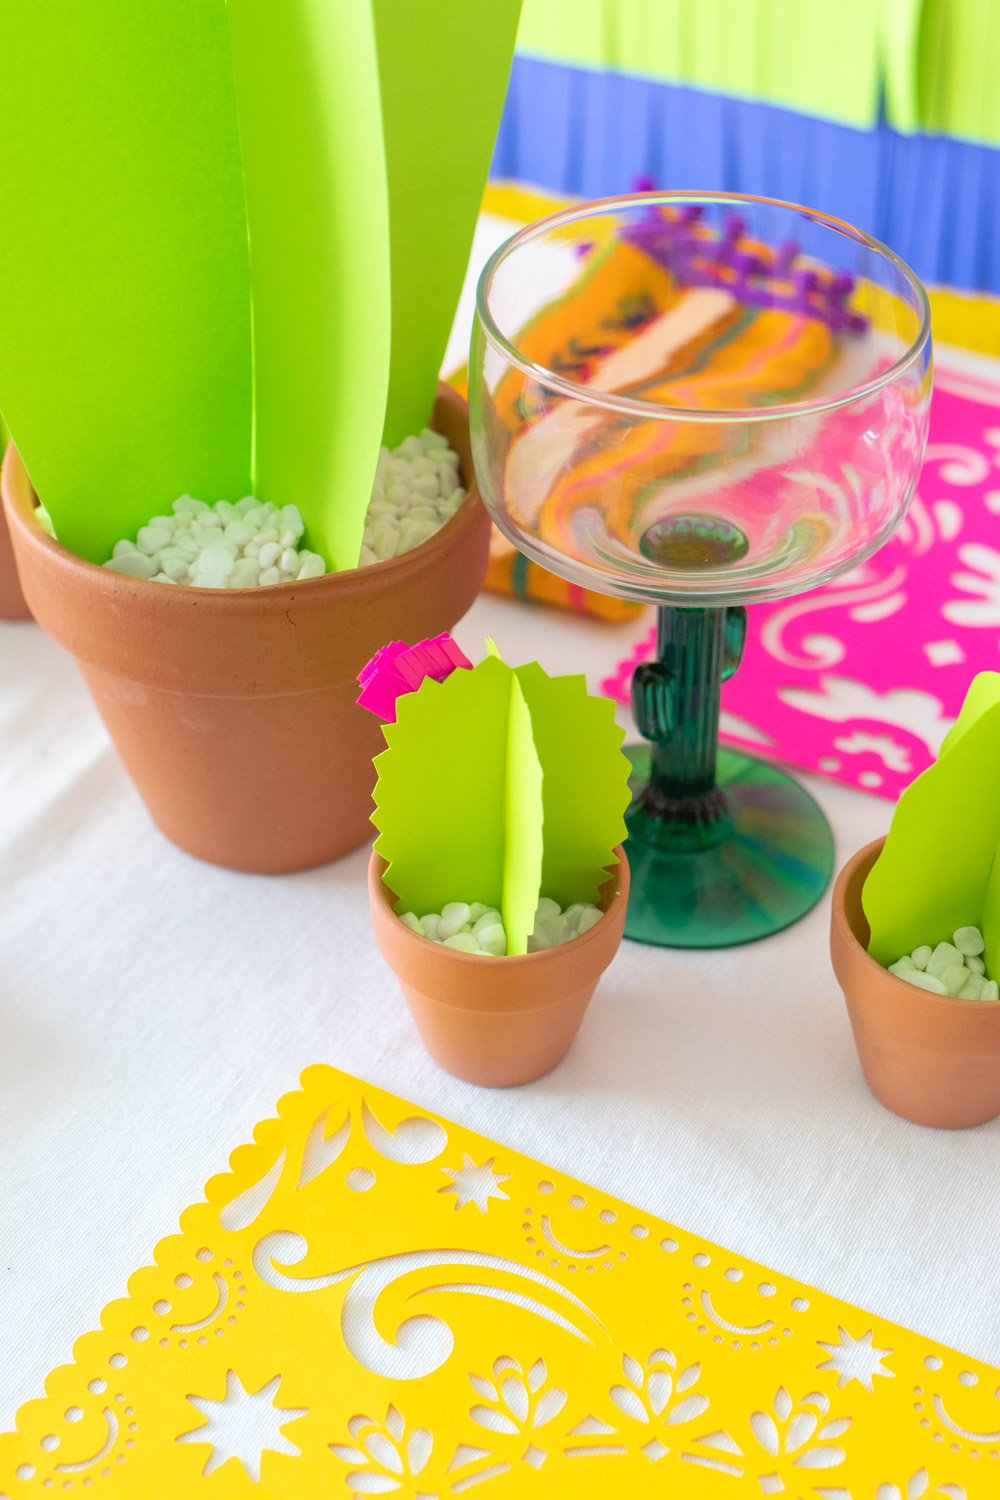 mini paper cacti in pots on tablecloth with glassware and paper placemats